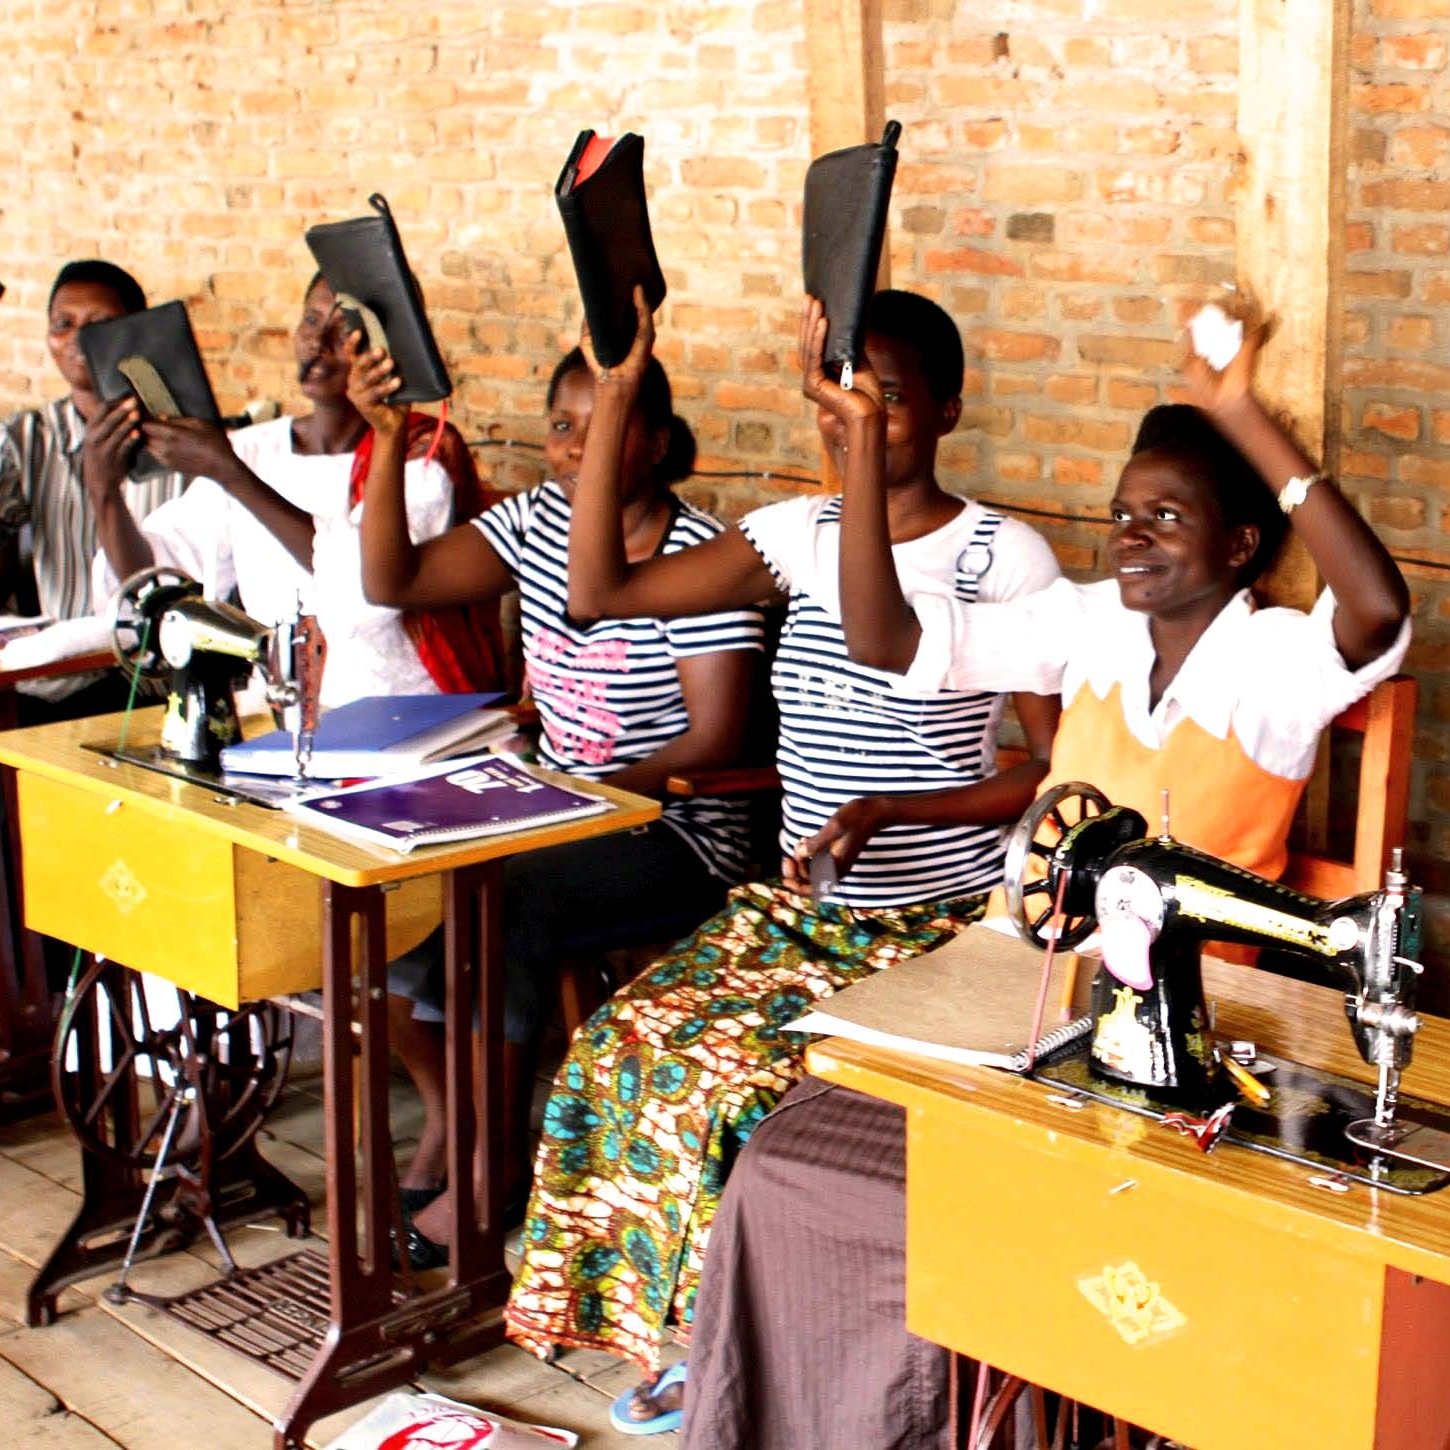 We are developing entrepreneurial women through a sewing school, giving them the opportunity to create their own business.